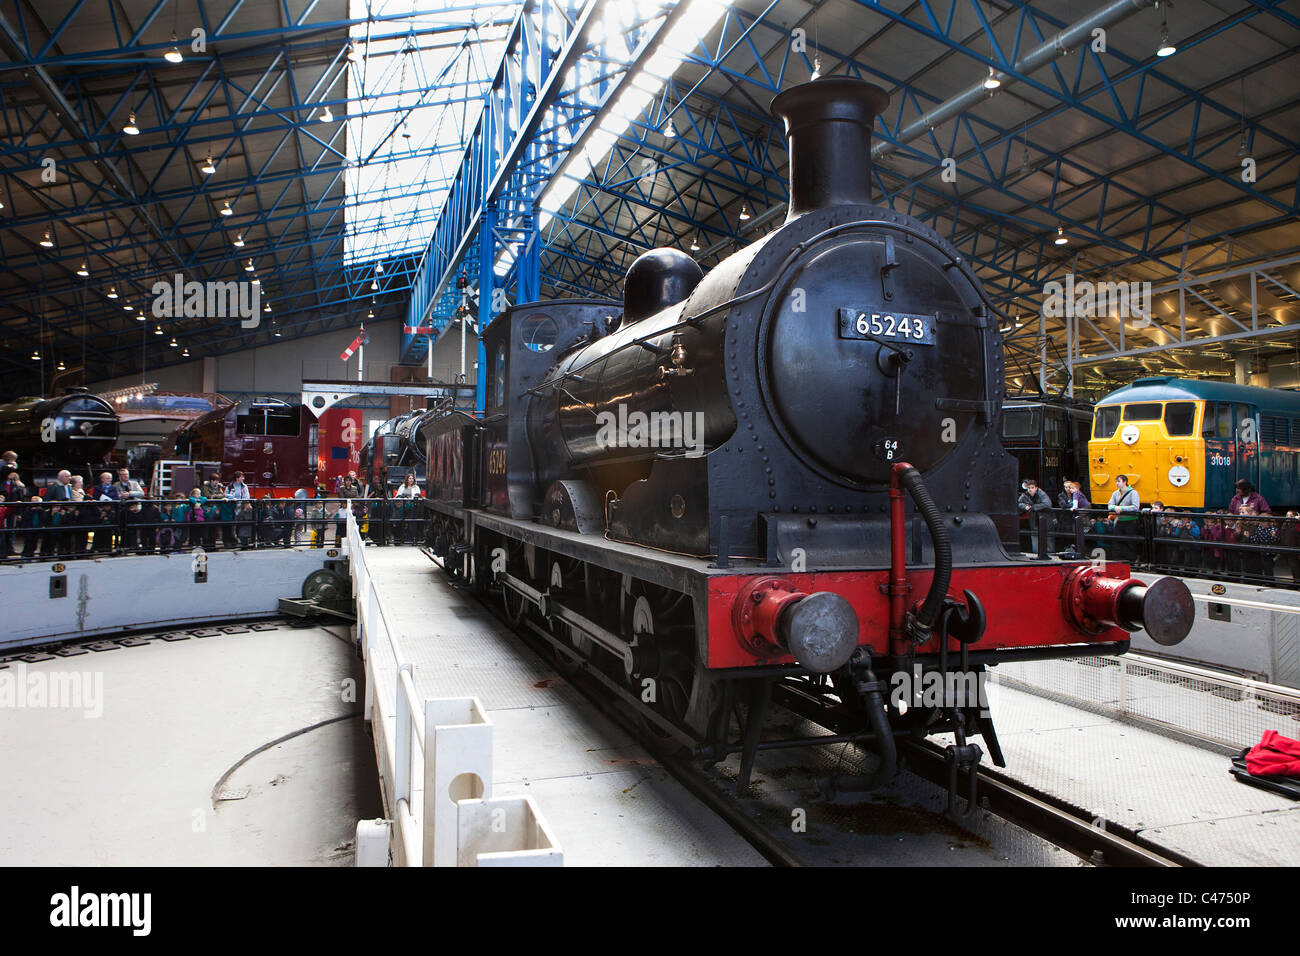 LNER: 65243 Class J36 'Maude' 0-6-0 Stirling on the turntable at the National Railway Museum in York - Stock Image